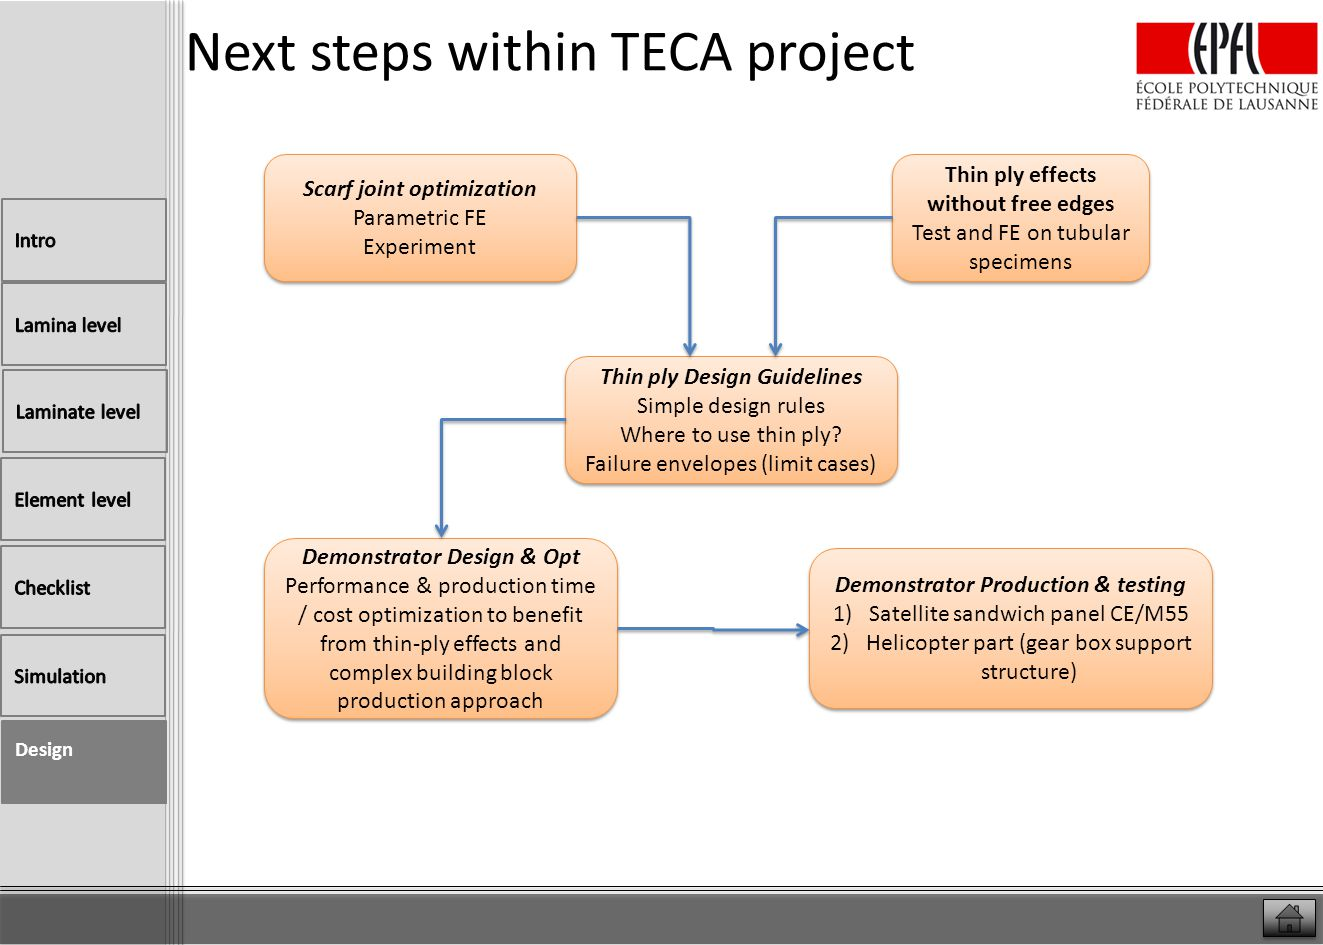 Next steps within TECA project